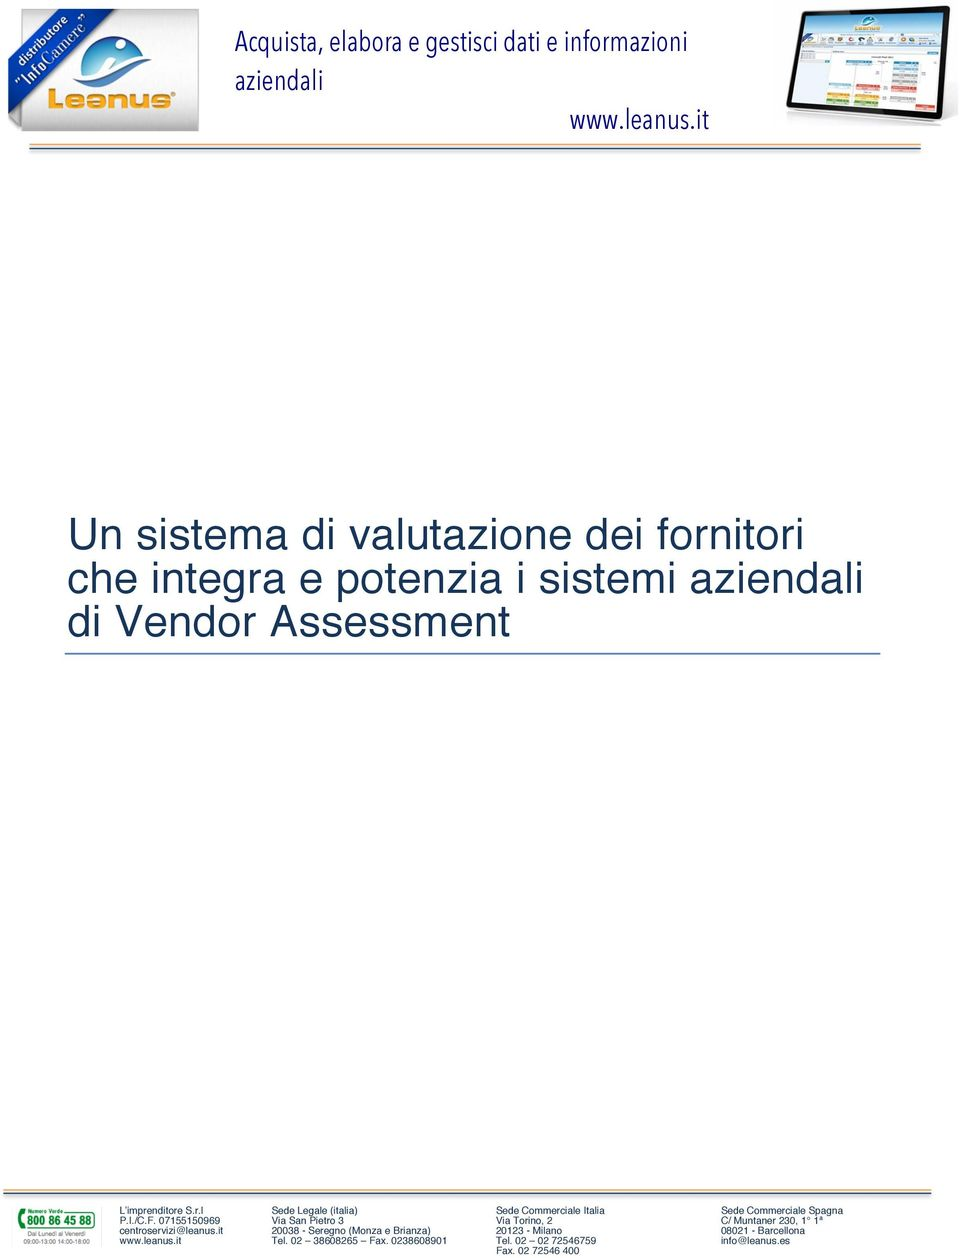 sistemi di Vendor Assessment Tel.